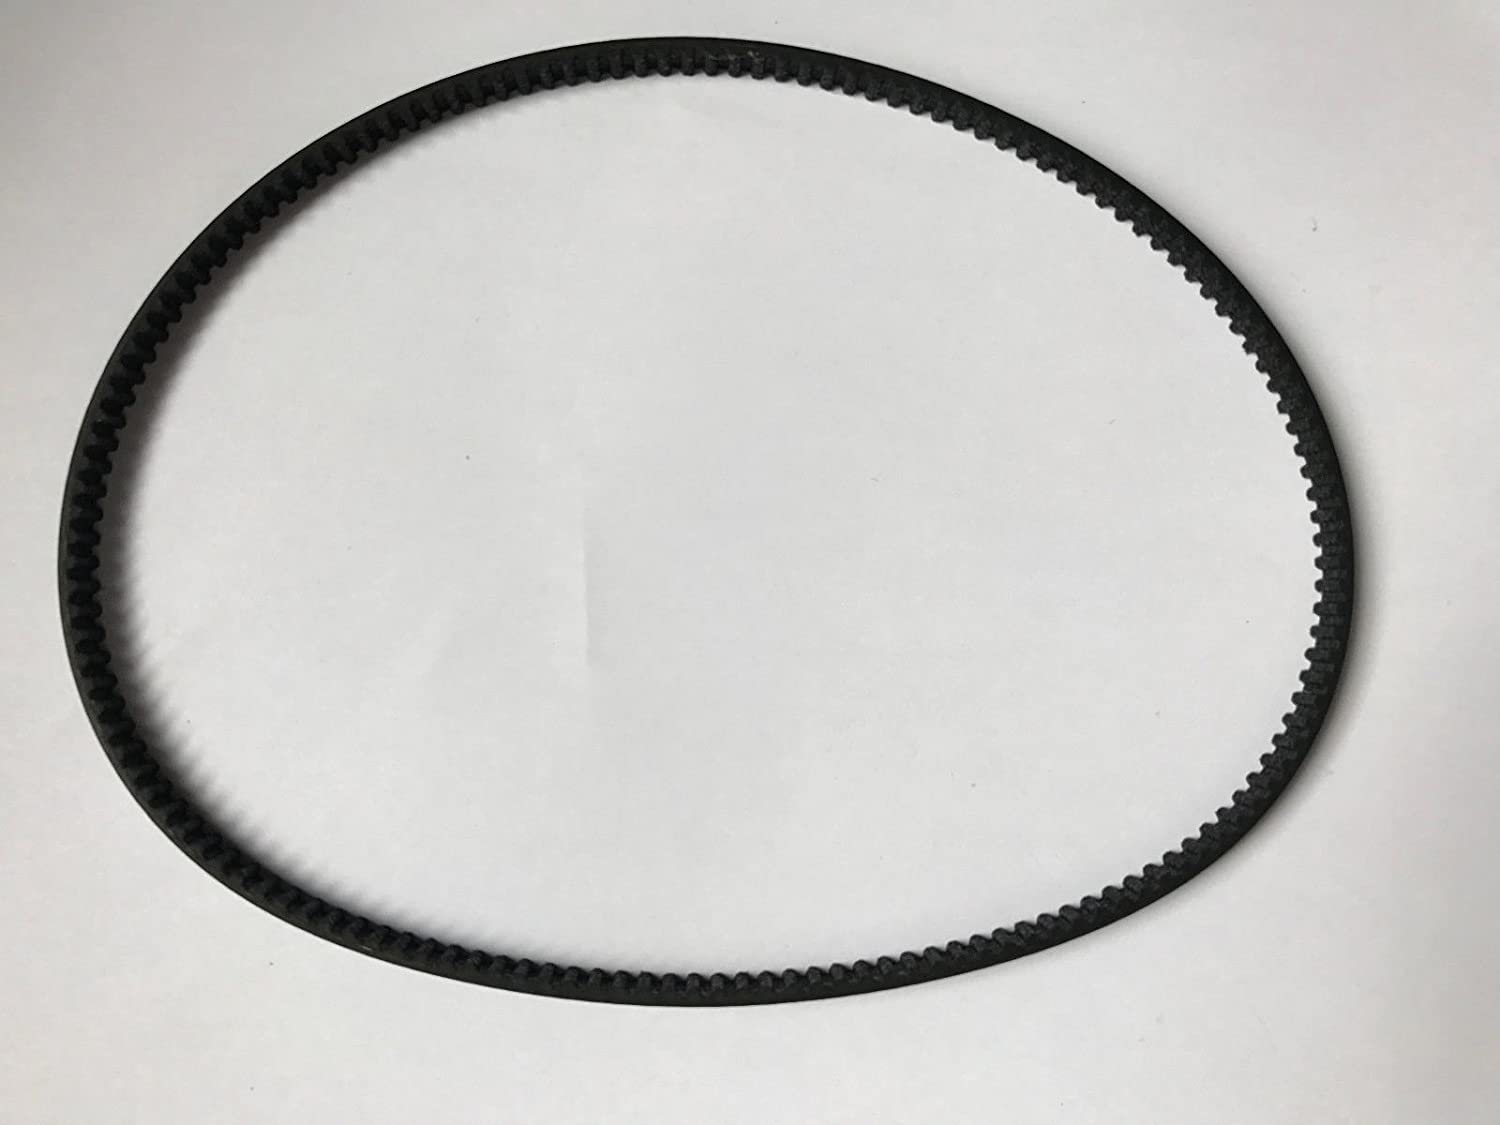 NEW Replacement BELT for Hamilton Beach Food Processor model 707